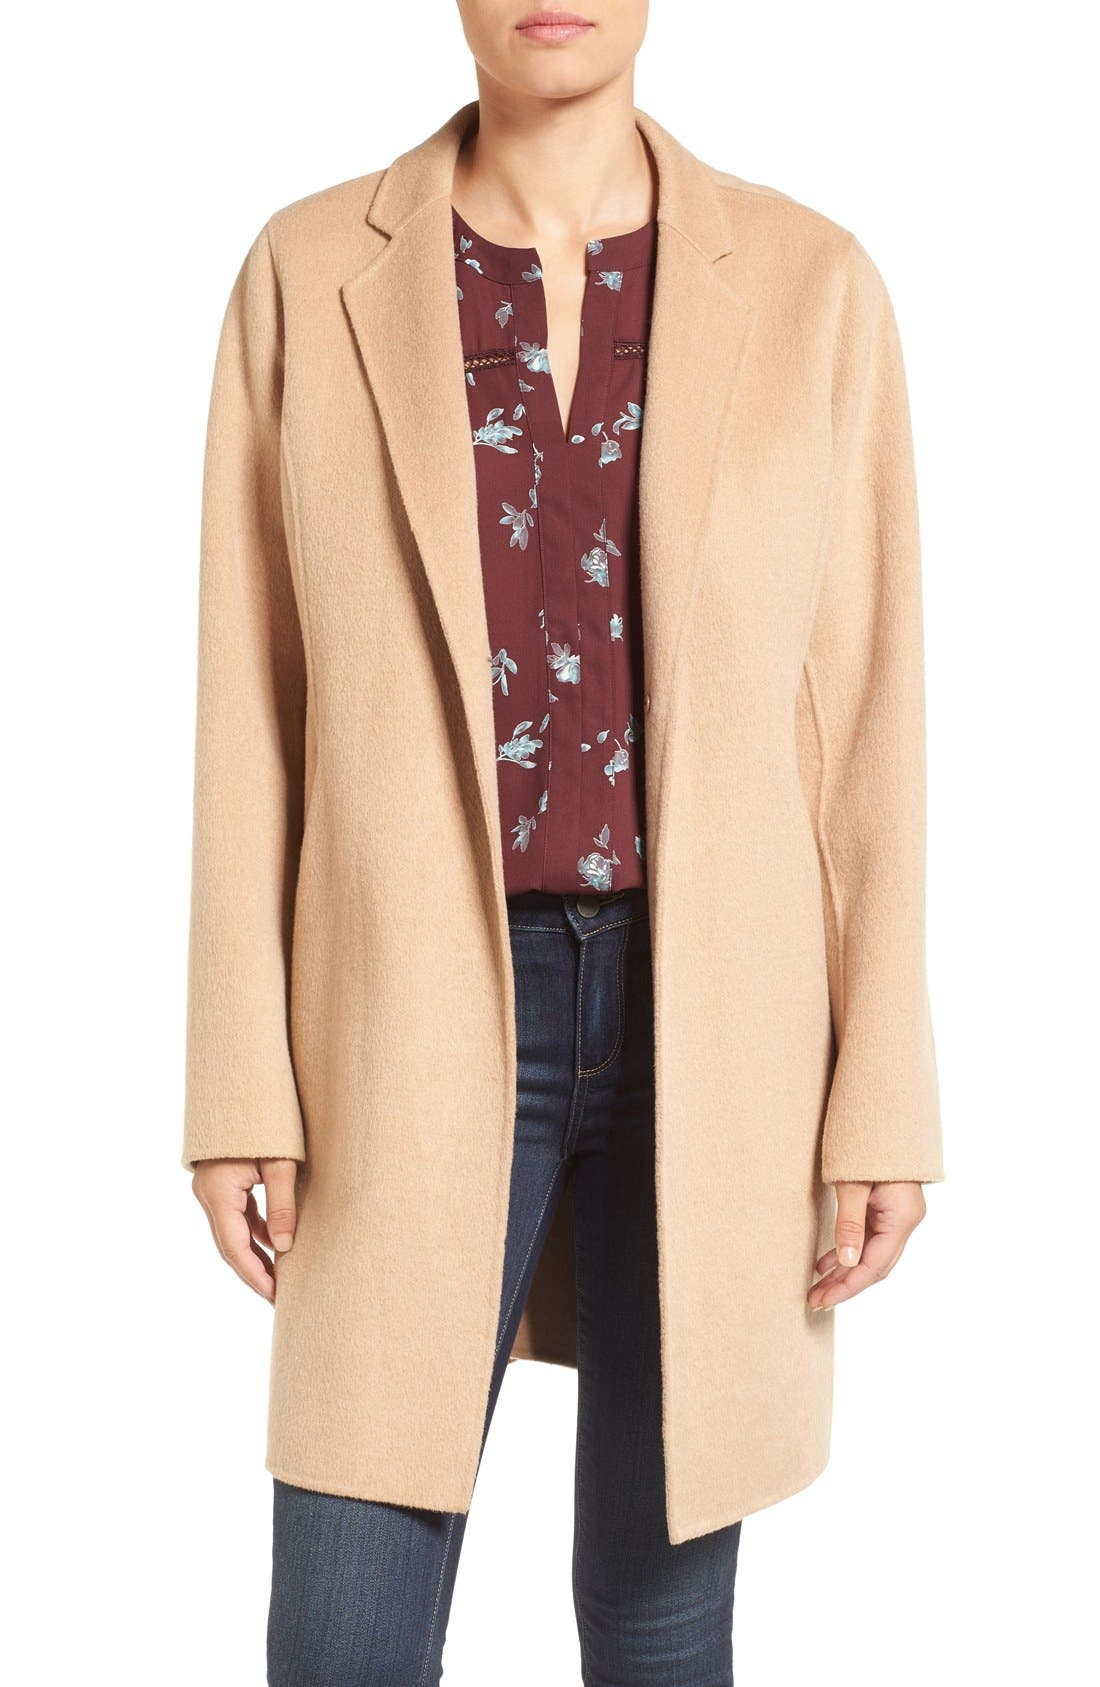 MICHAEL Michael Kors Double Face Wool Blend Coat (Regular & Petite)